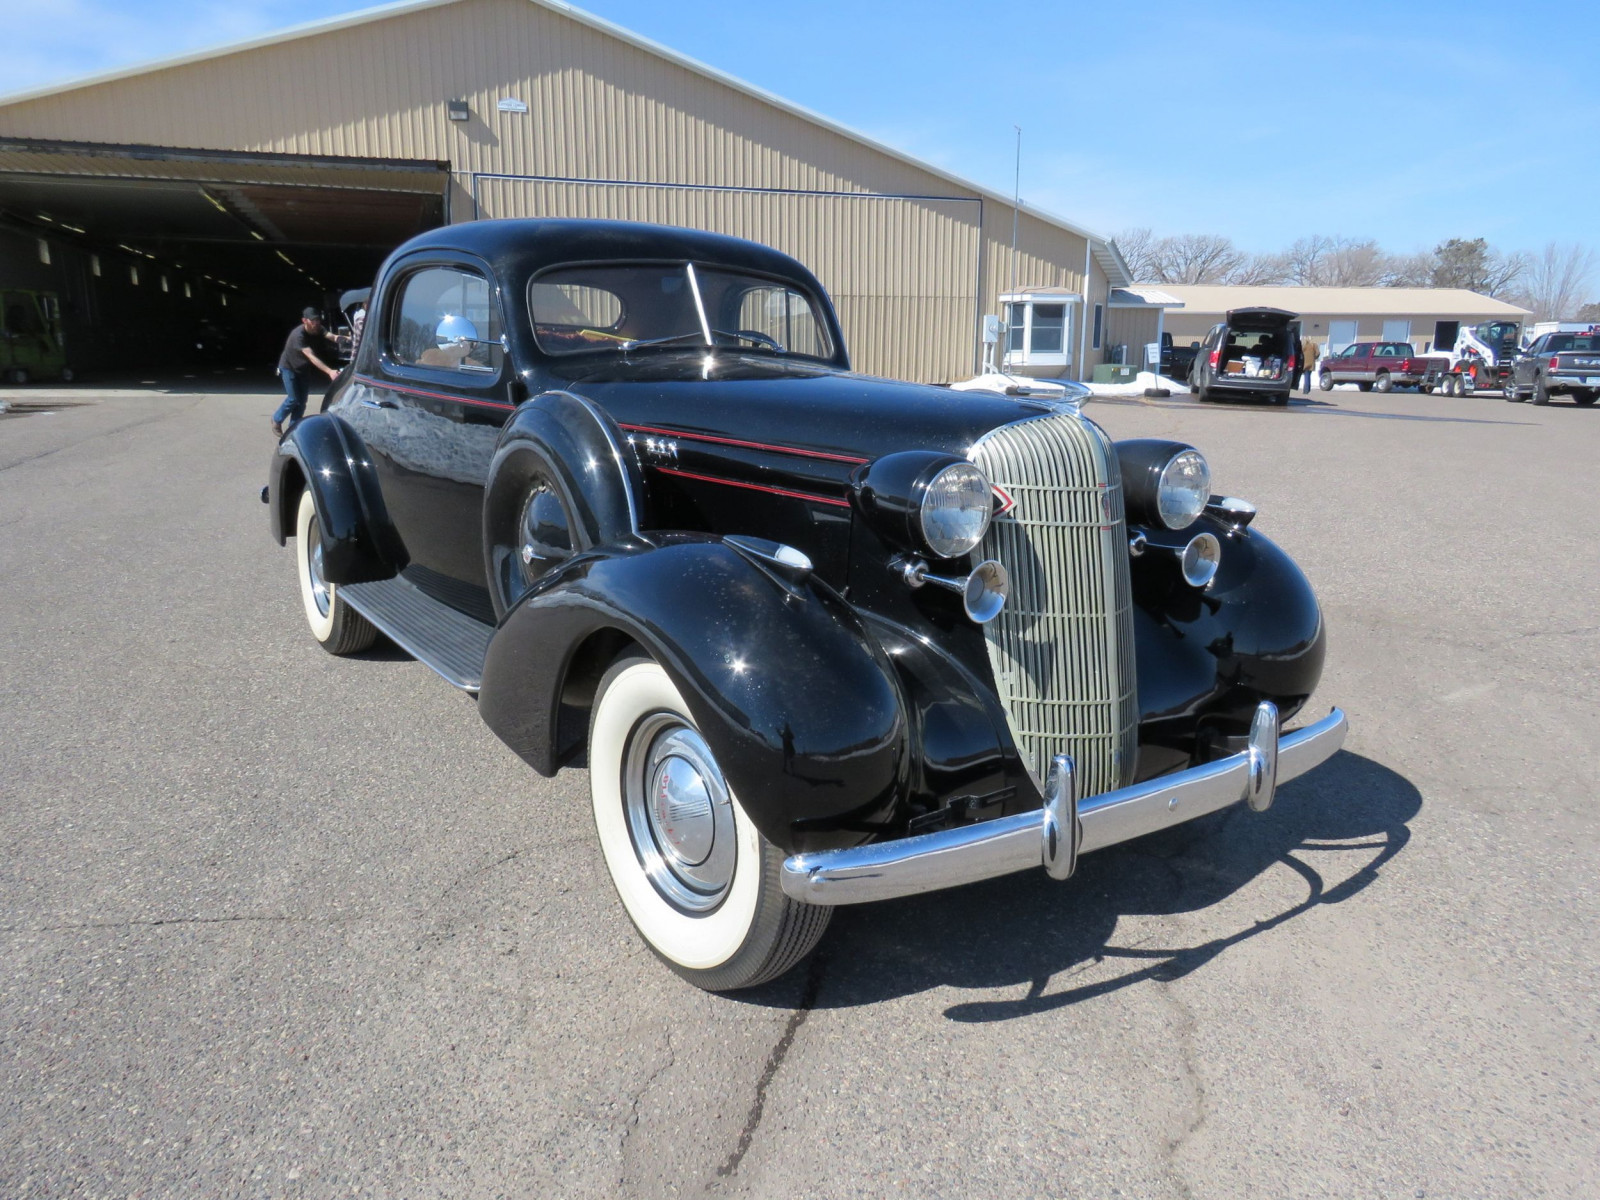 1936 Oldsmobile 3 Window Coupe - Image 3